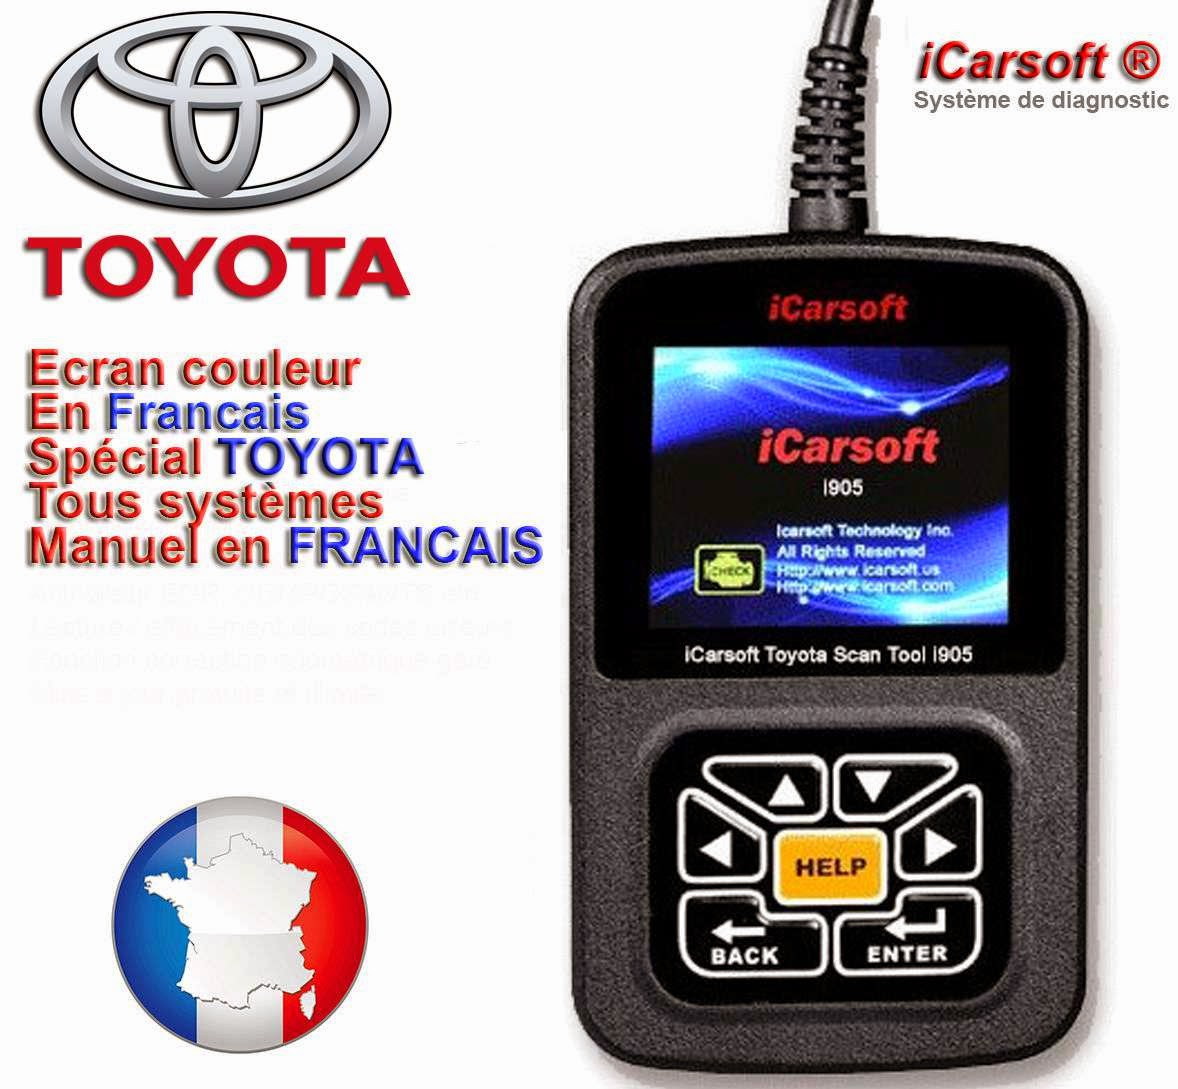 diagnostic toyota icarsoft i905 manuel en fran ais valise diagnostic autel launch. Black Bedroom Furniture Sets. Home Design Ideas